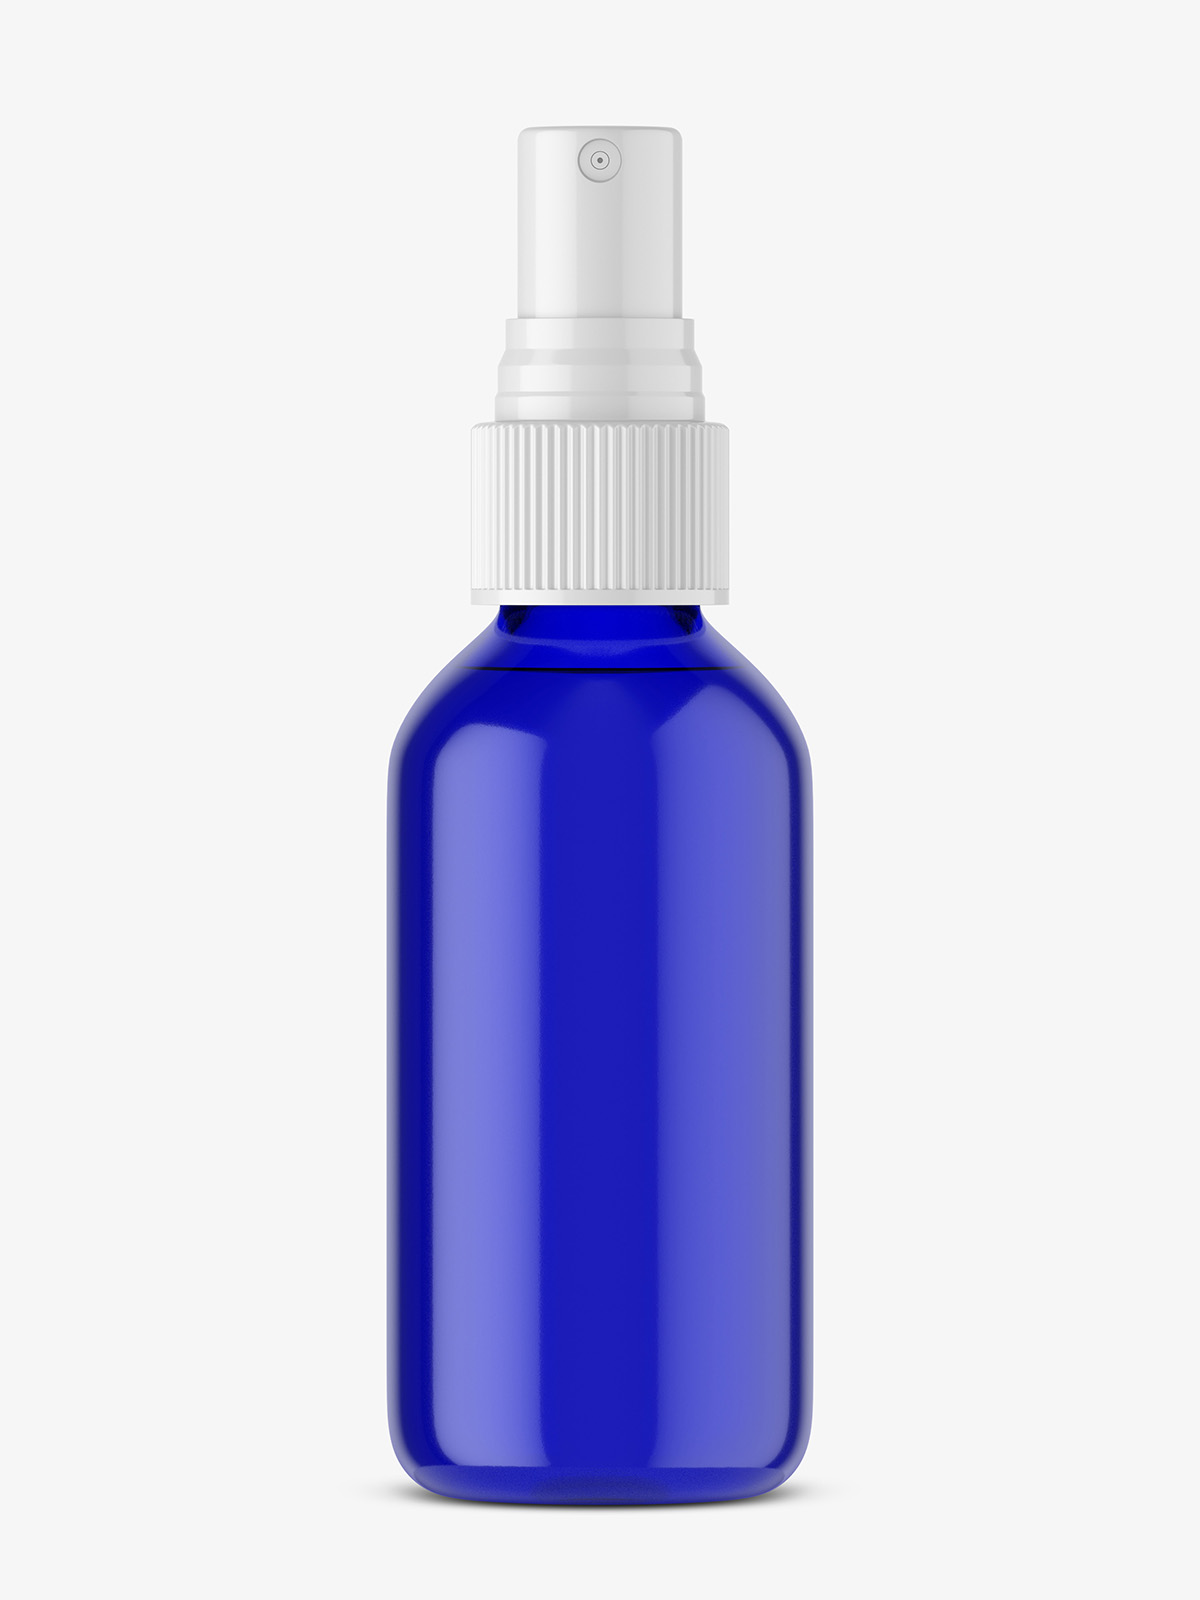 Cobalt_Spray_Bottle_Mockup_1a.jpg